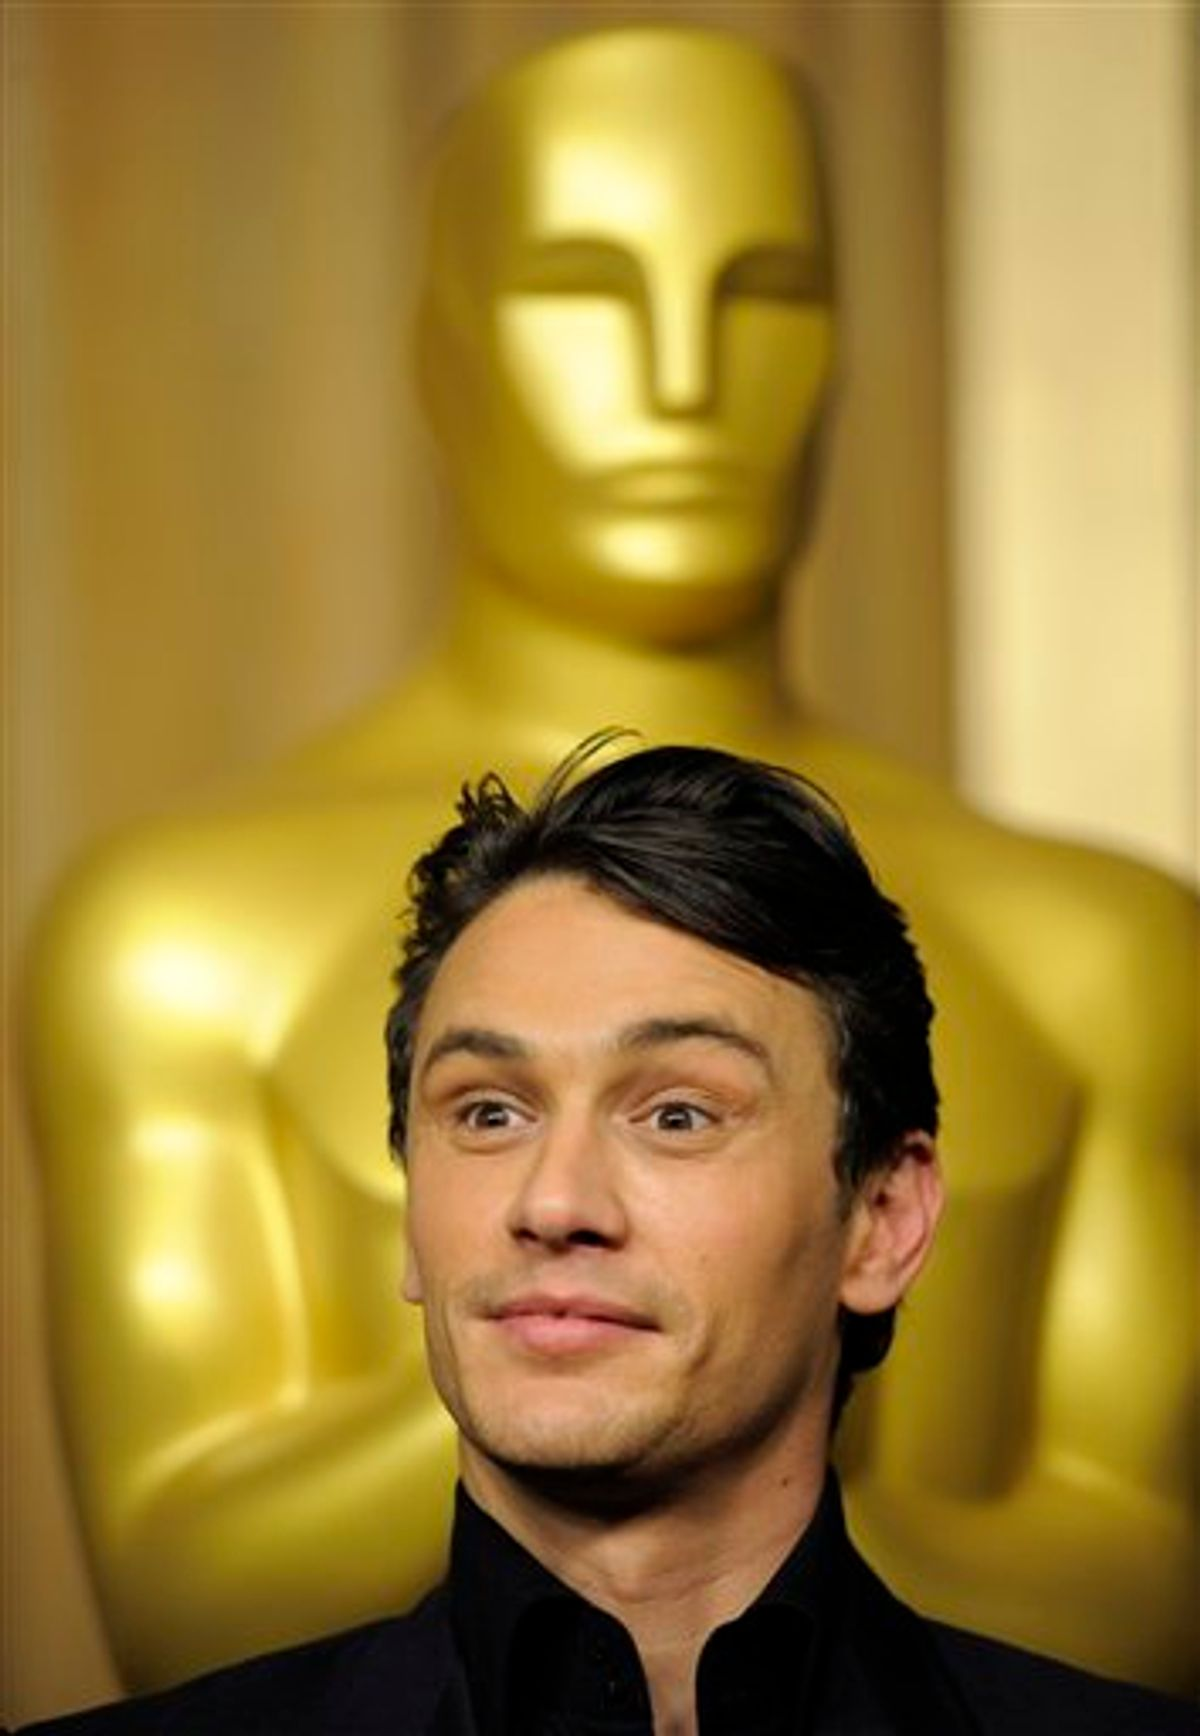 """James Franco, an Oscar nominee for Actor in a Leading Role for """"127 Hours,"""" as well as co-host of the 83rd Academy Awards, arrives at the 30th Academy Awards Nominees Luncheon in Beverly Hills, Calif., Monday, Feb. 7, 2011. (AP Photo/Chris Pizzello)  (AP)"""